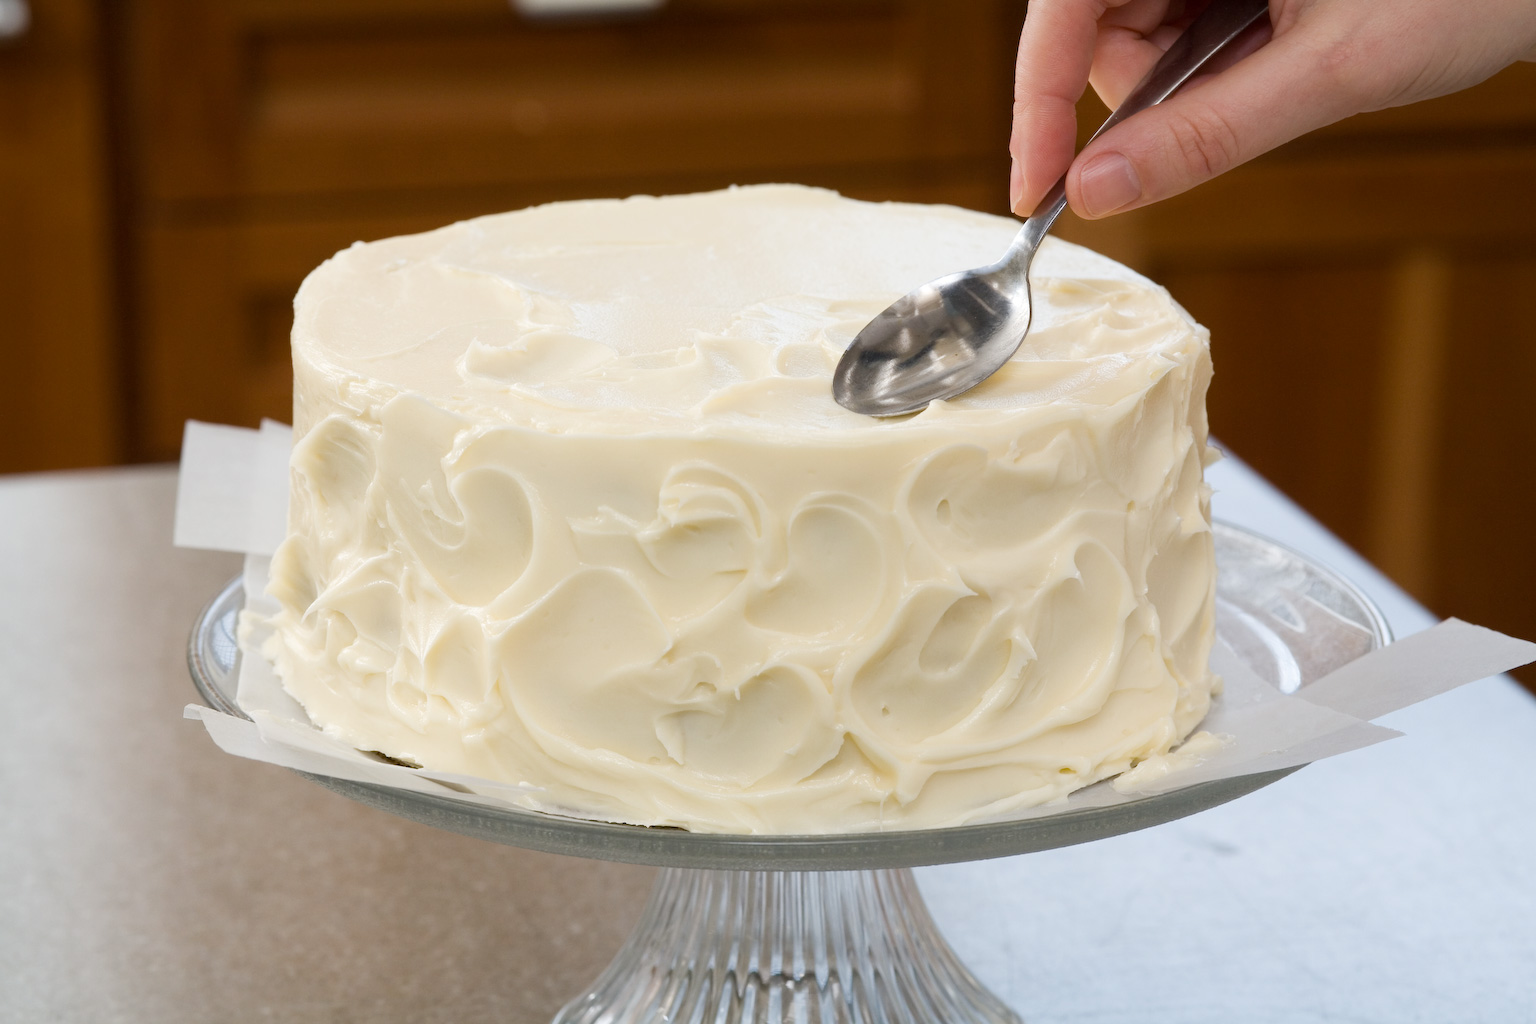 Homemade Cake Icing Designs : How to make a cake from scratch HireRush Blog